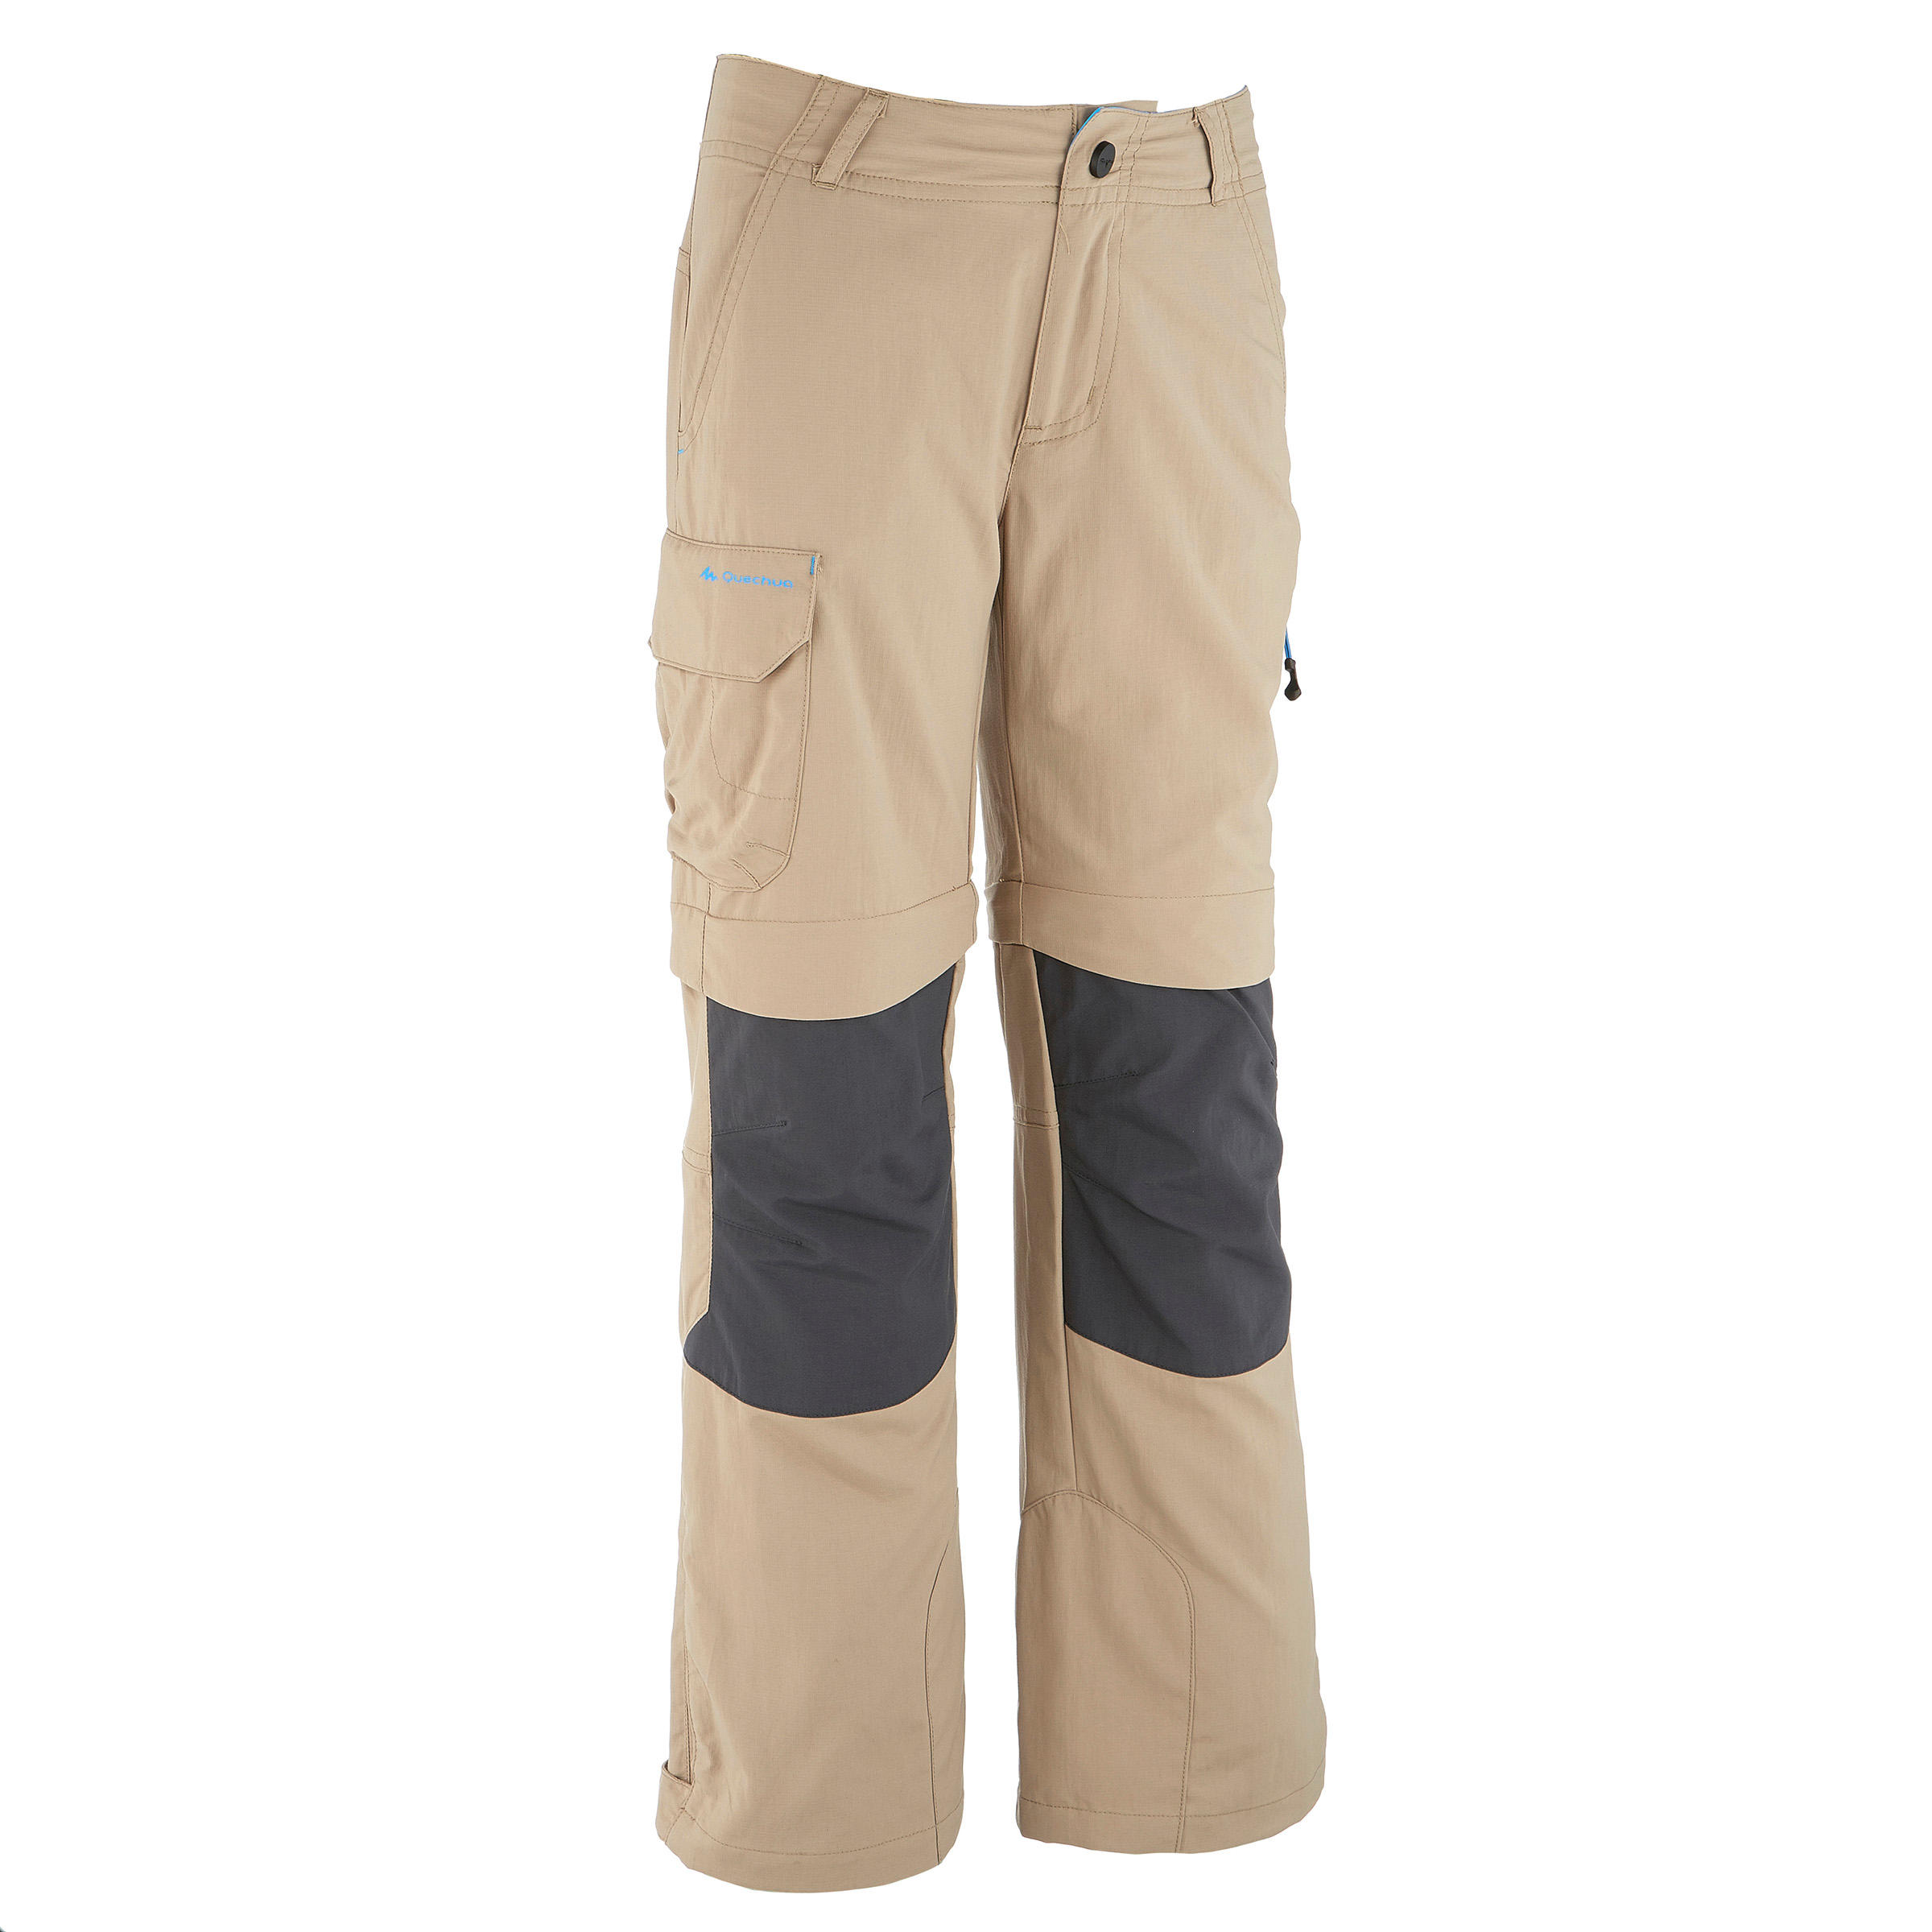 Kid's Hiking Pants MH550 (Modular) - Beige